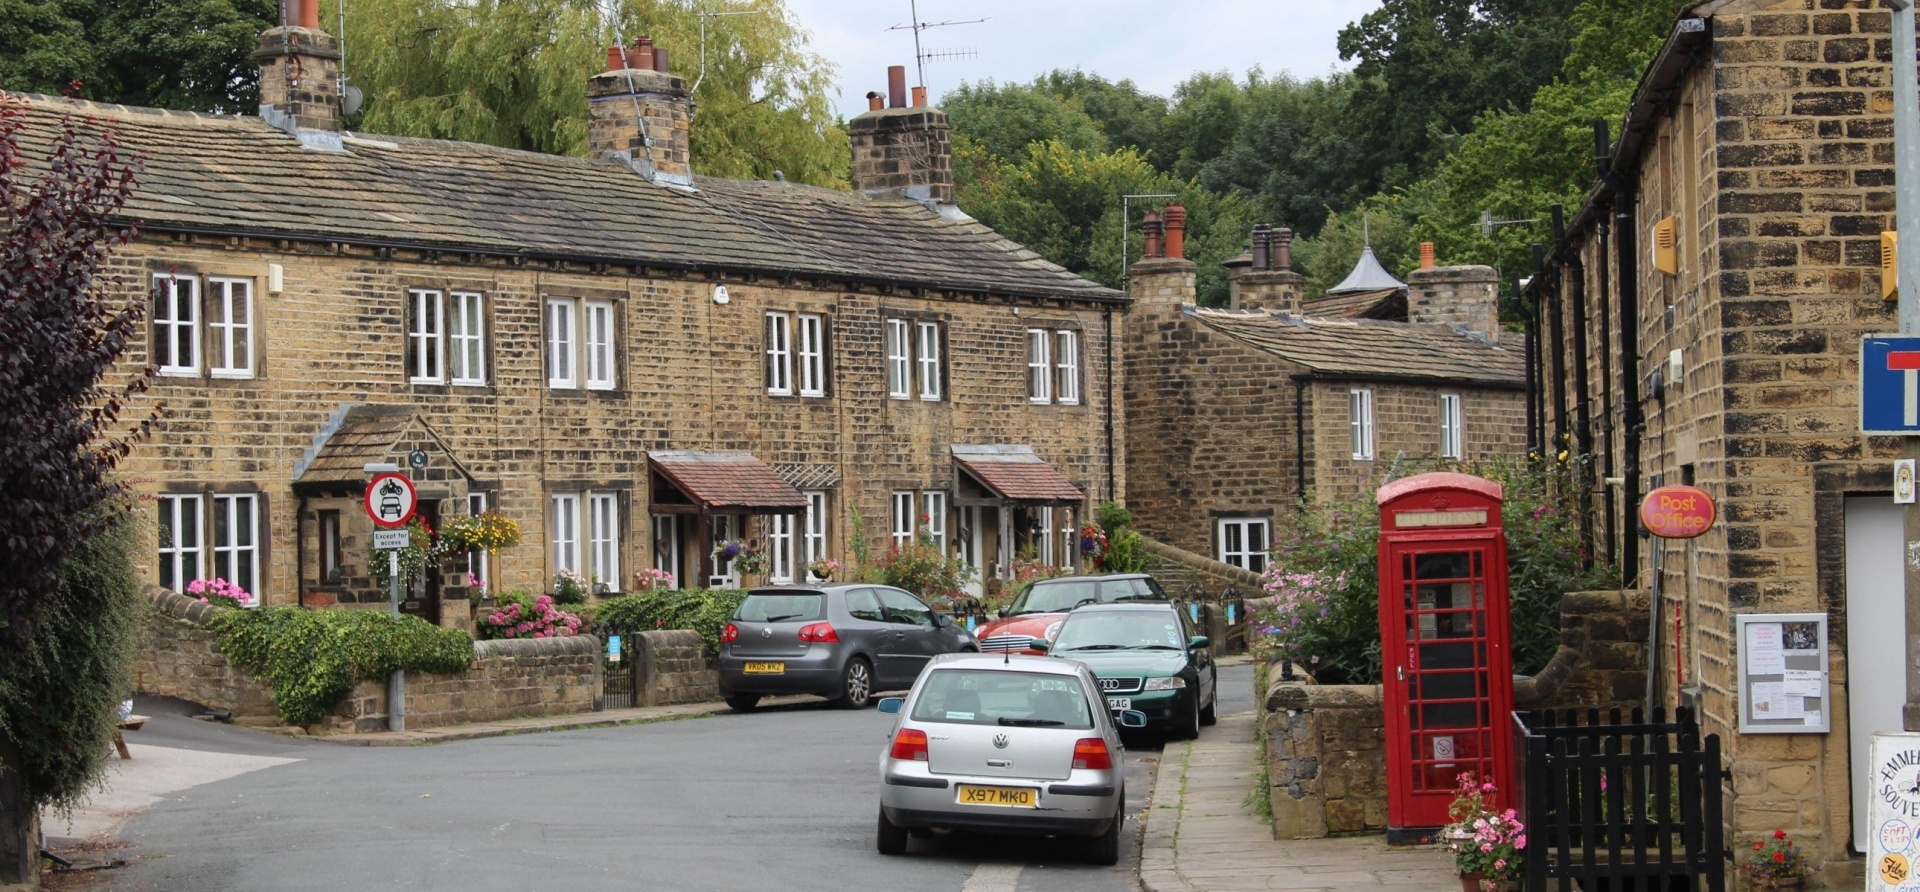 Emmerdale Filming Locations Bus Tour - Leeds-10